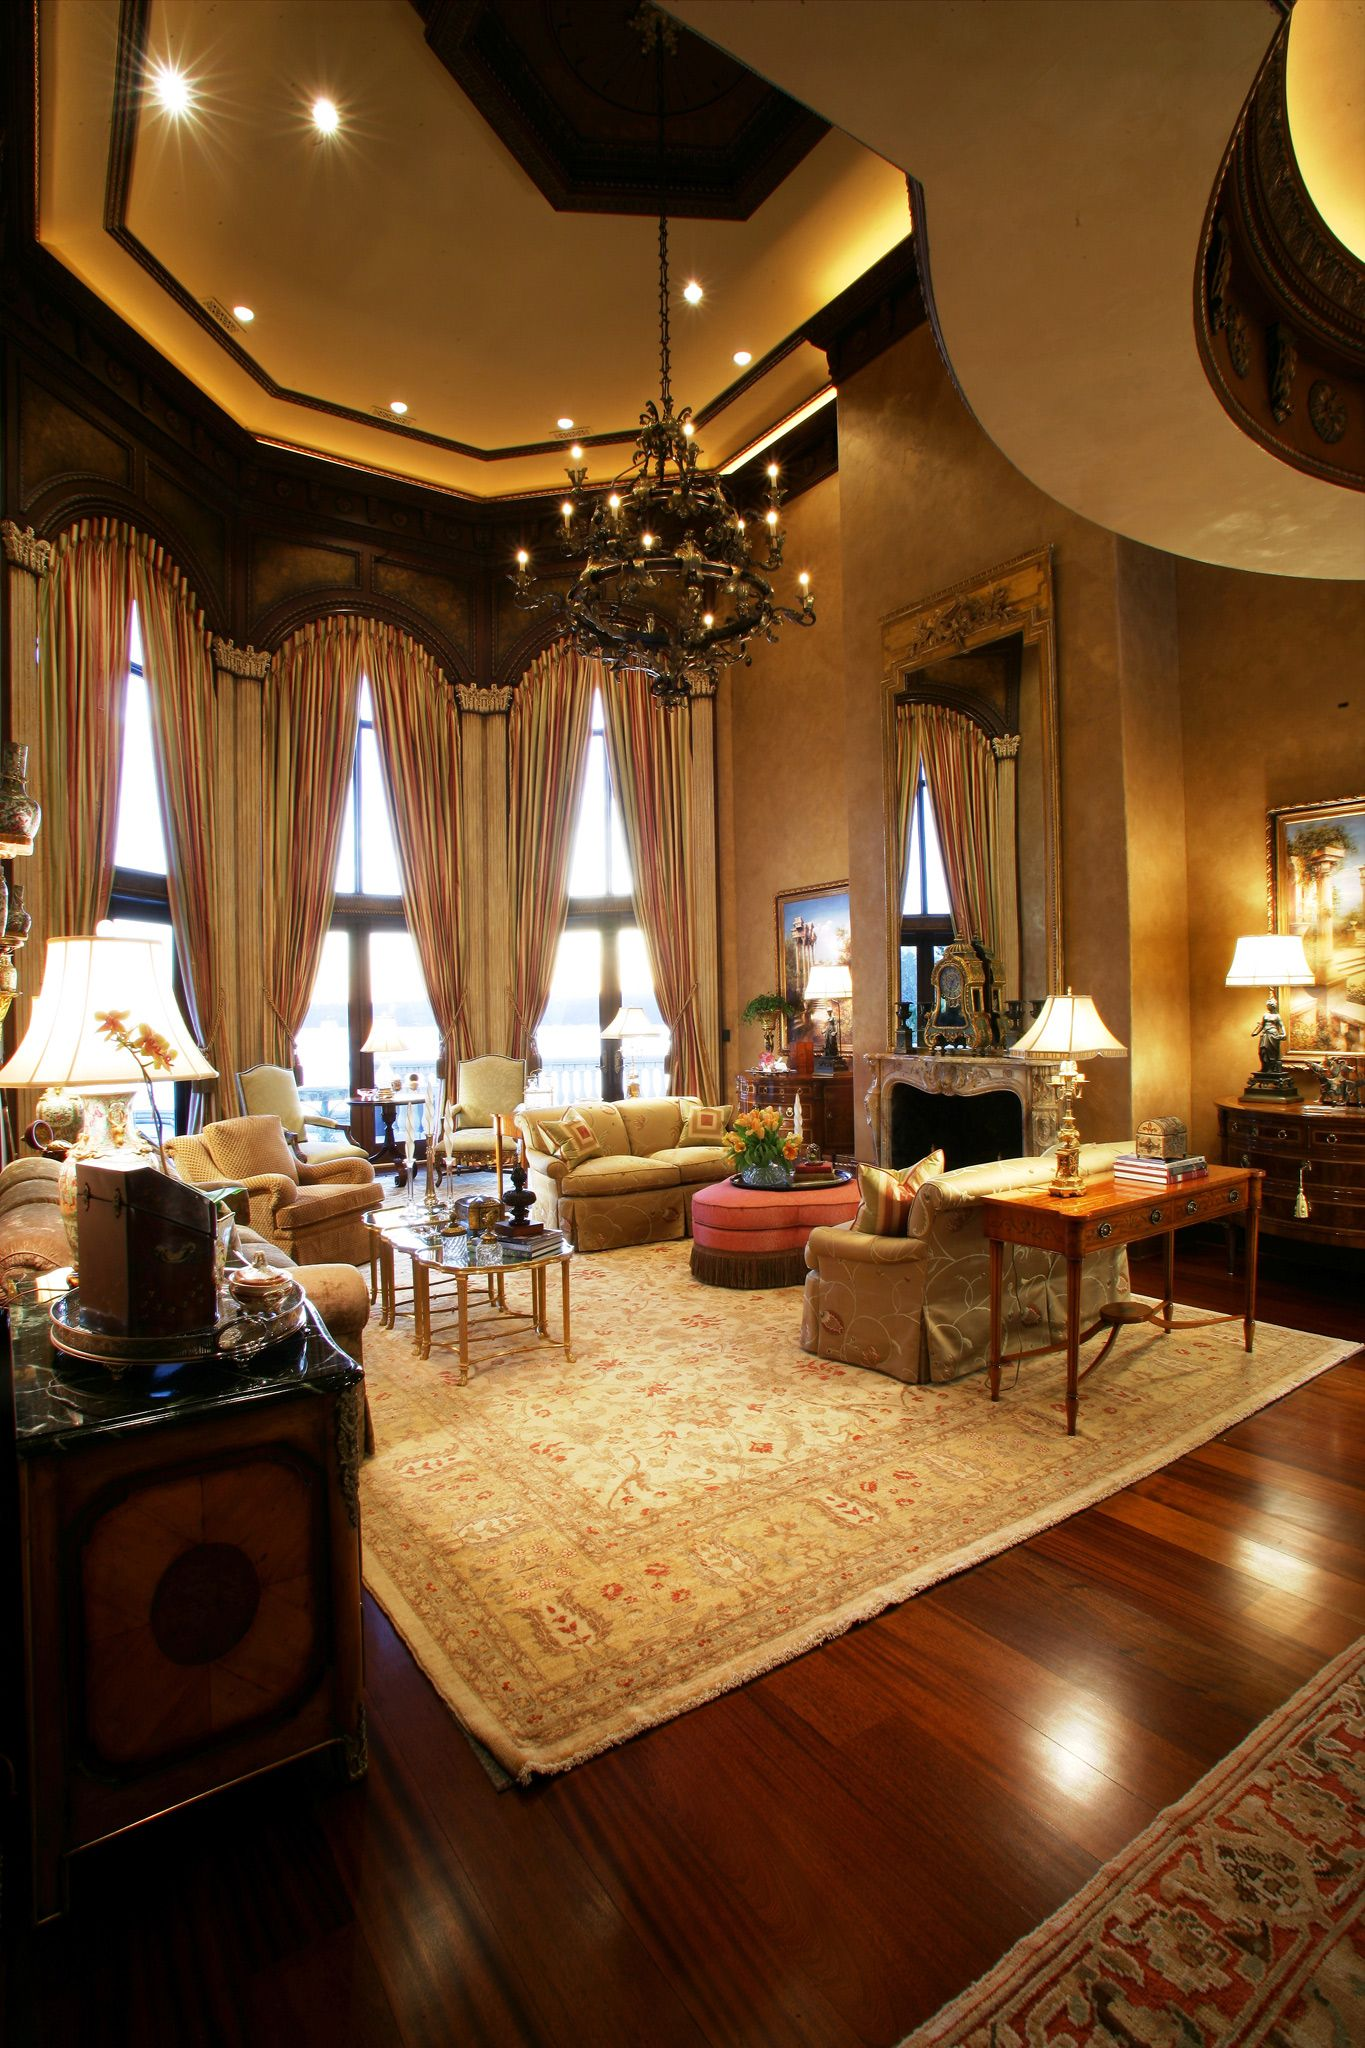 Dramatic living room multiple floor length windows with old